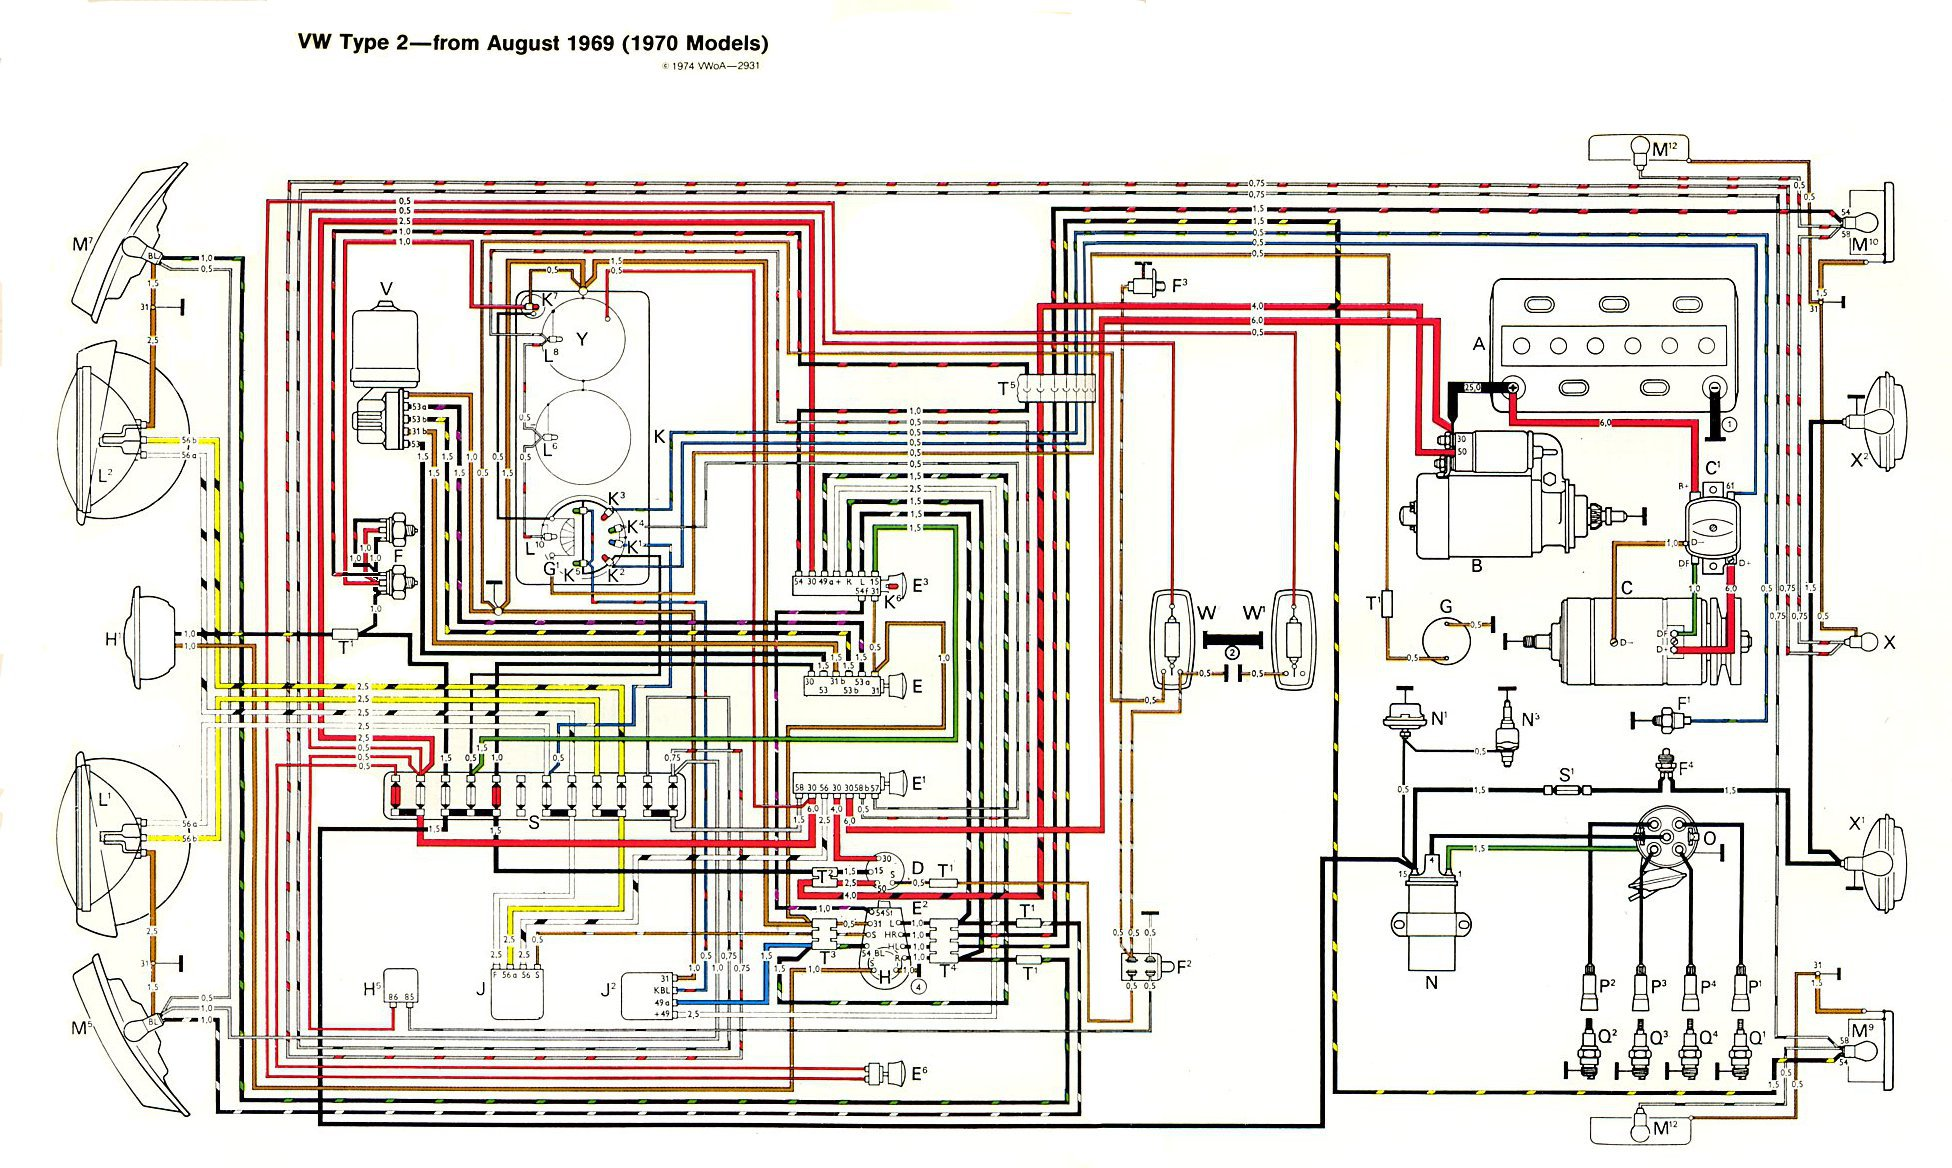 Type 2 Wiring Diagrams 68 Gm Brake For Dummies